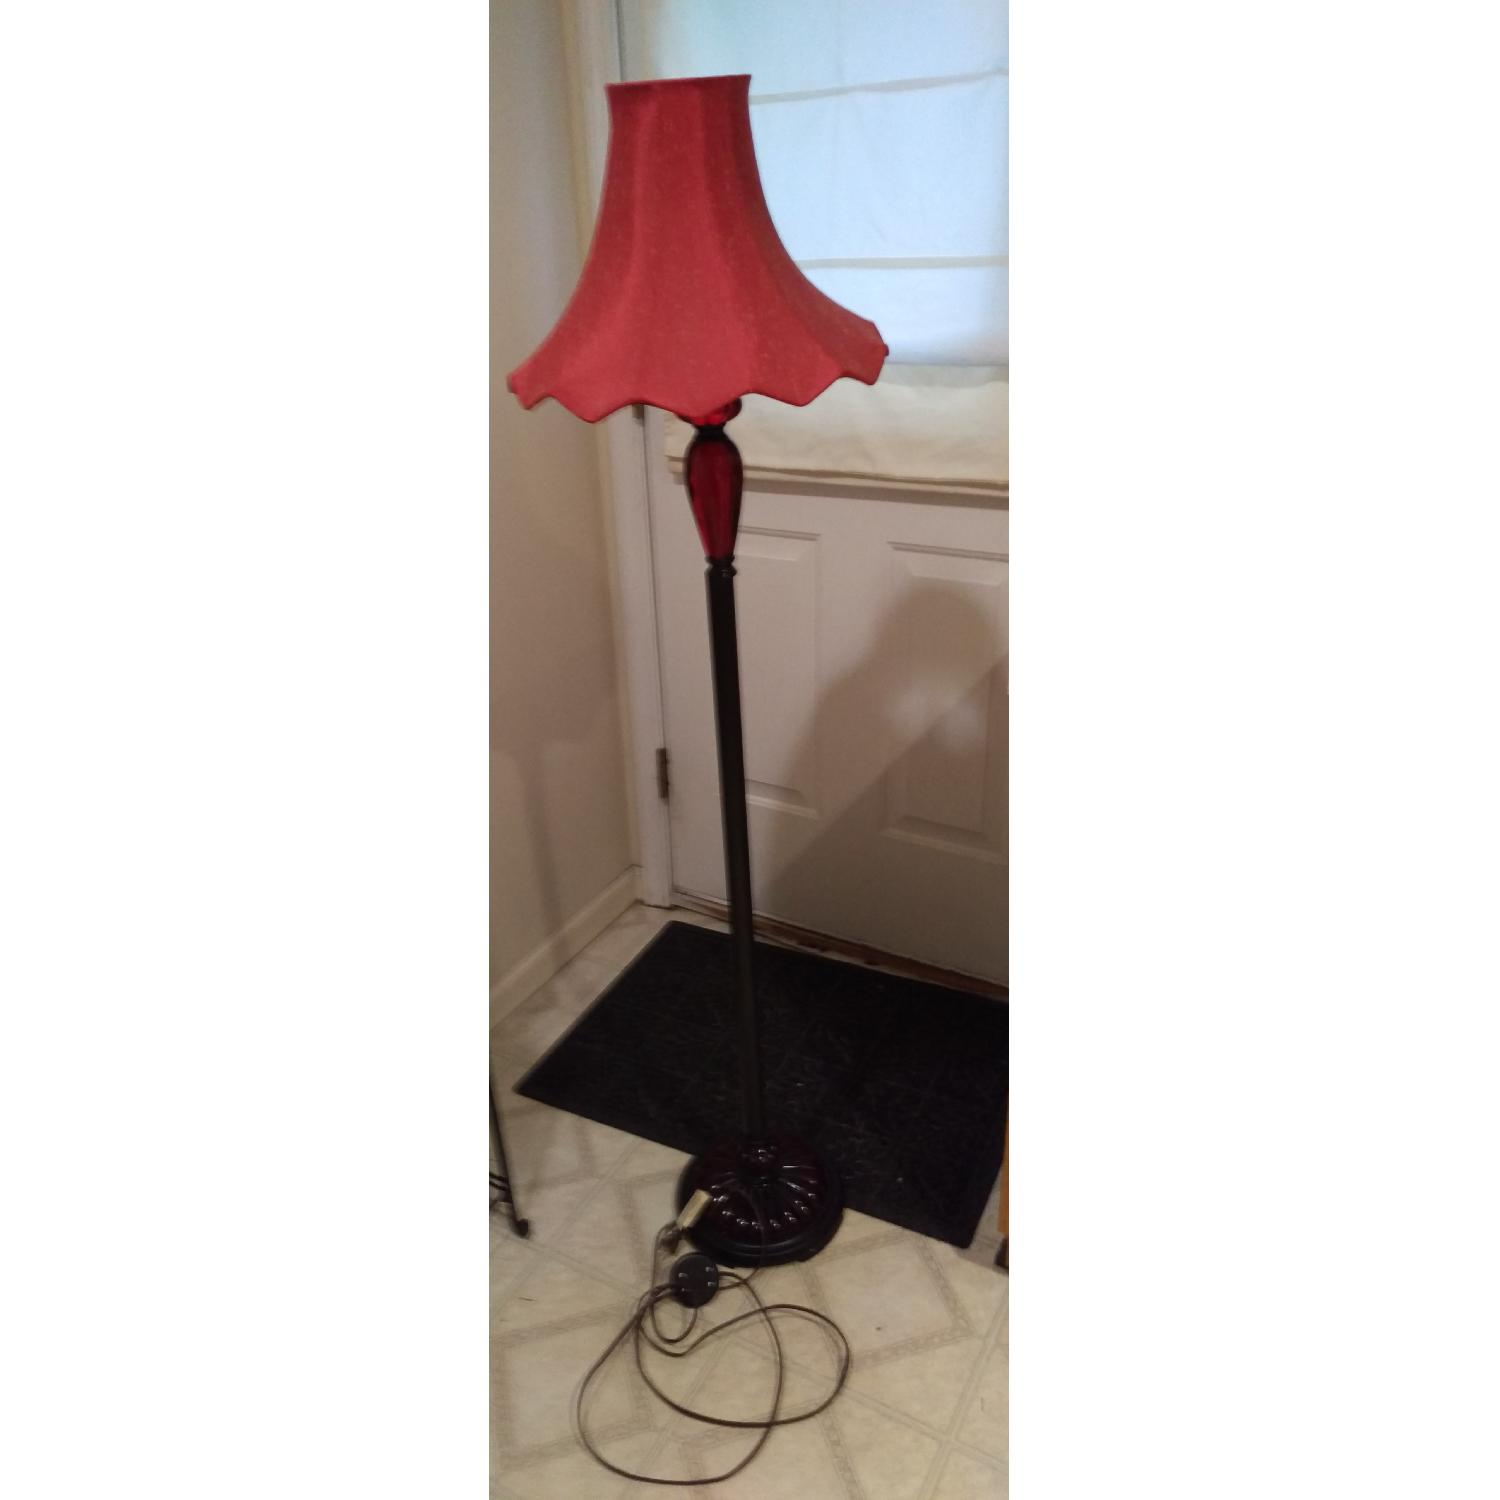 Torchiere Floor Lamp w/ Red Shade-2